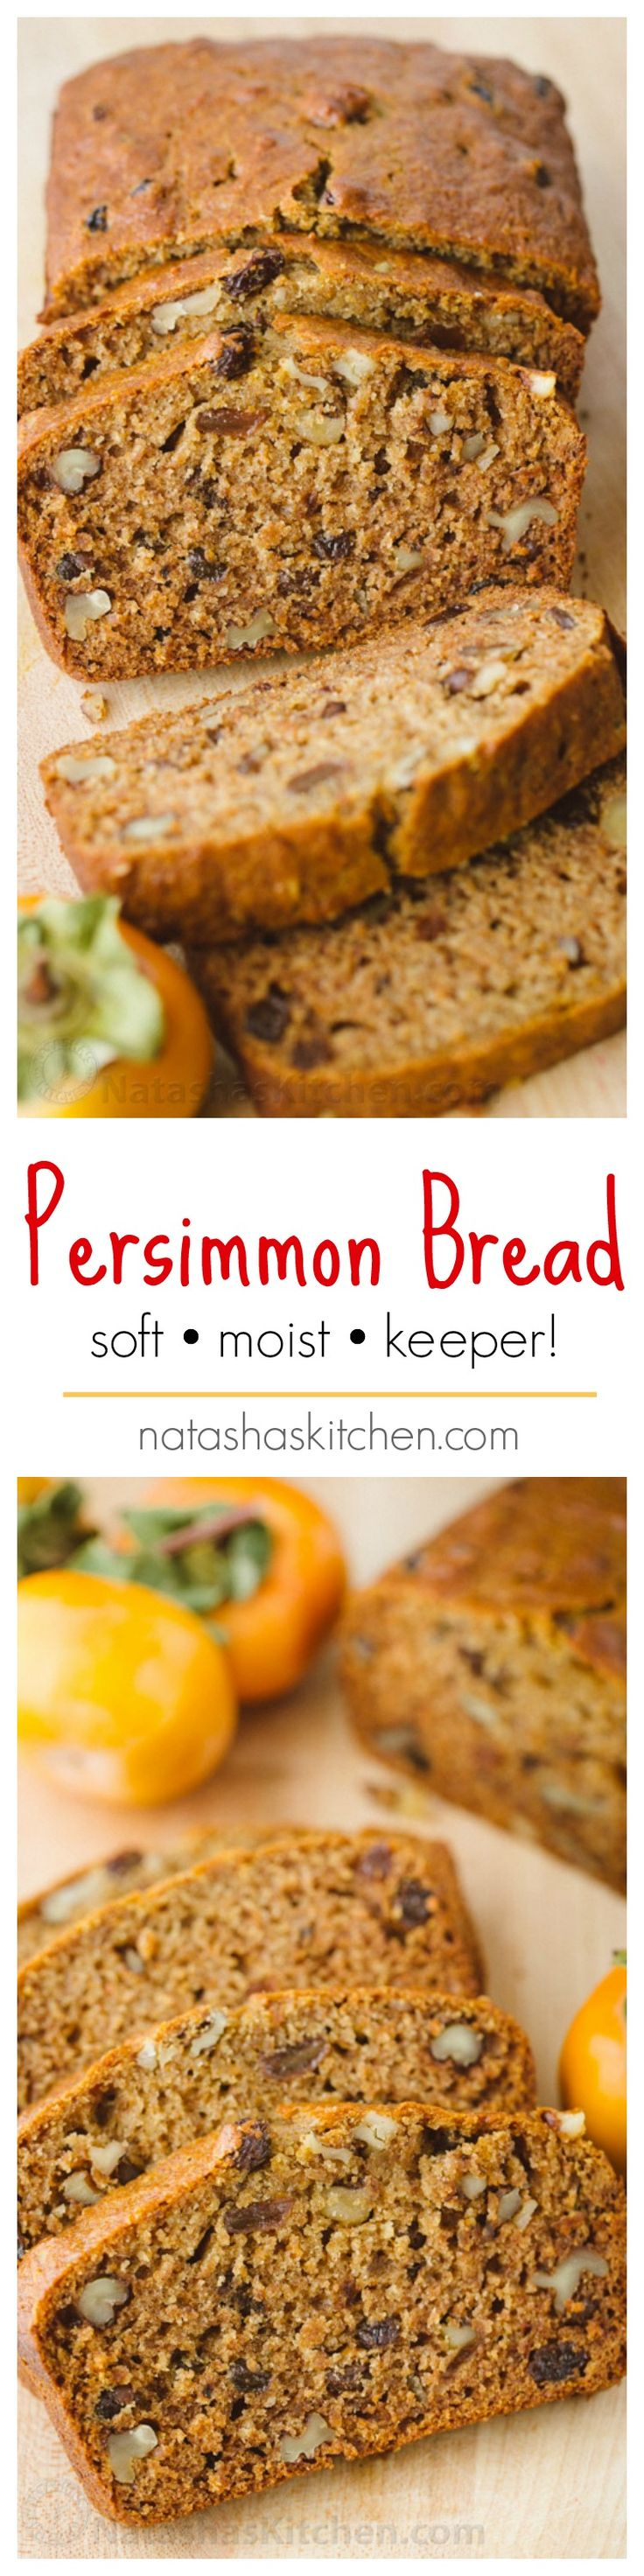 This Persimmon Bread Recipe is a keeper (in a make again and again sort of way)! Soft, moist, and every slice is studded with walnuts and raisins.